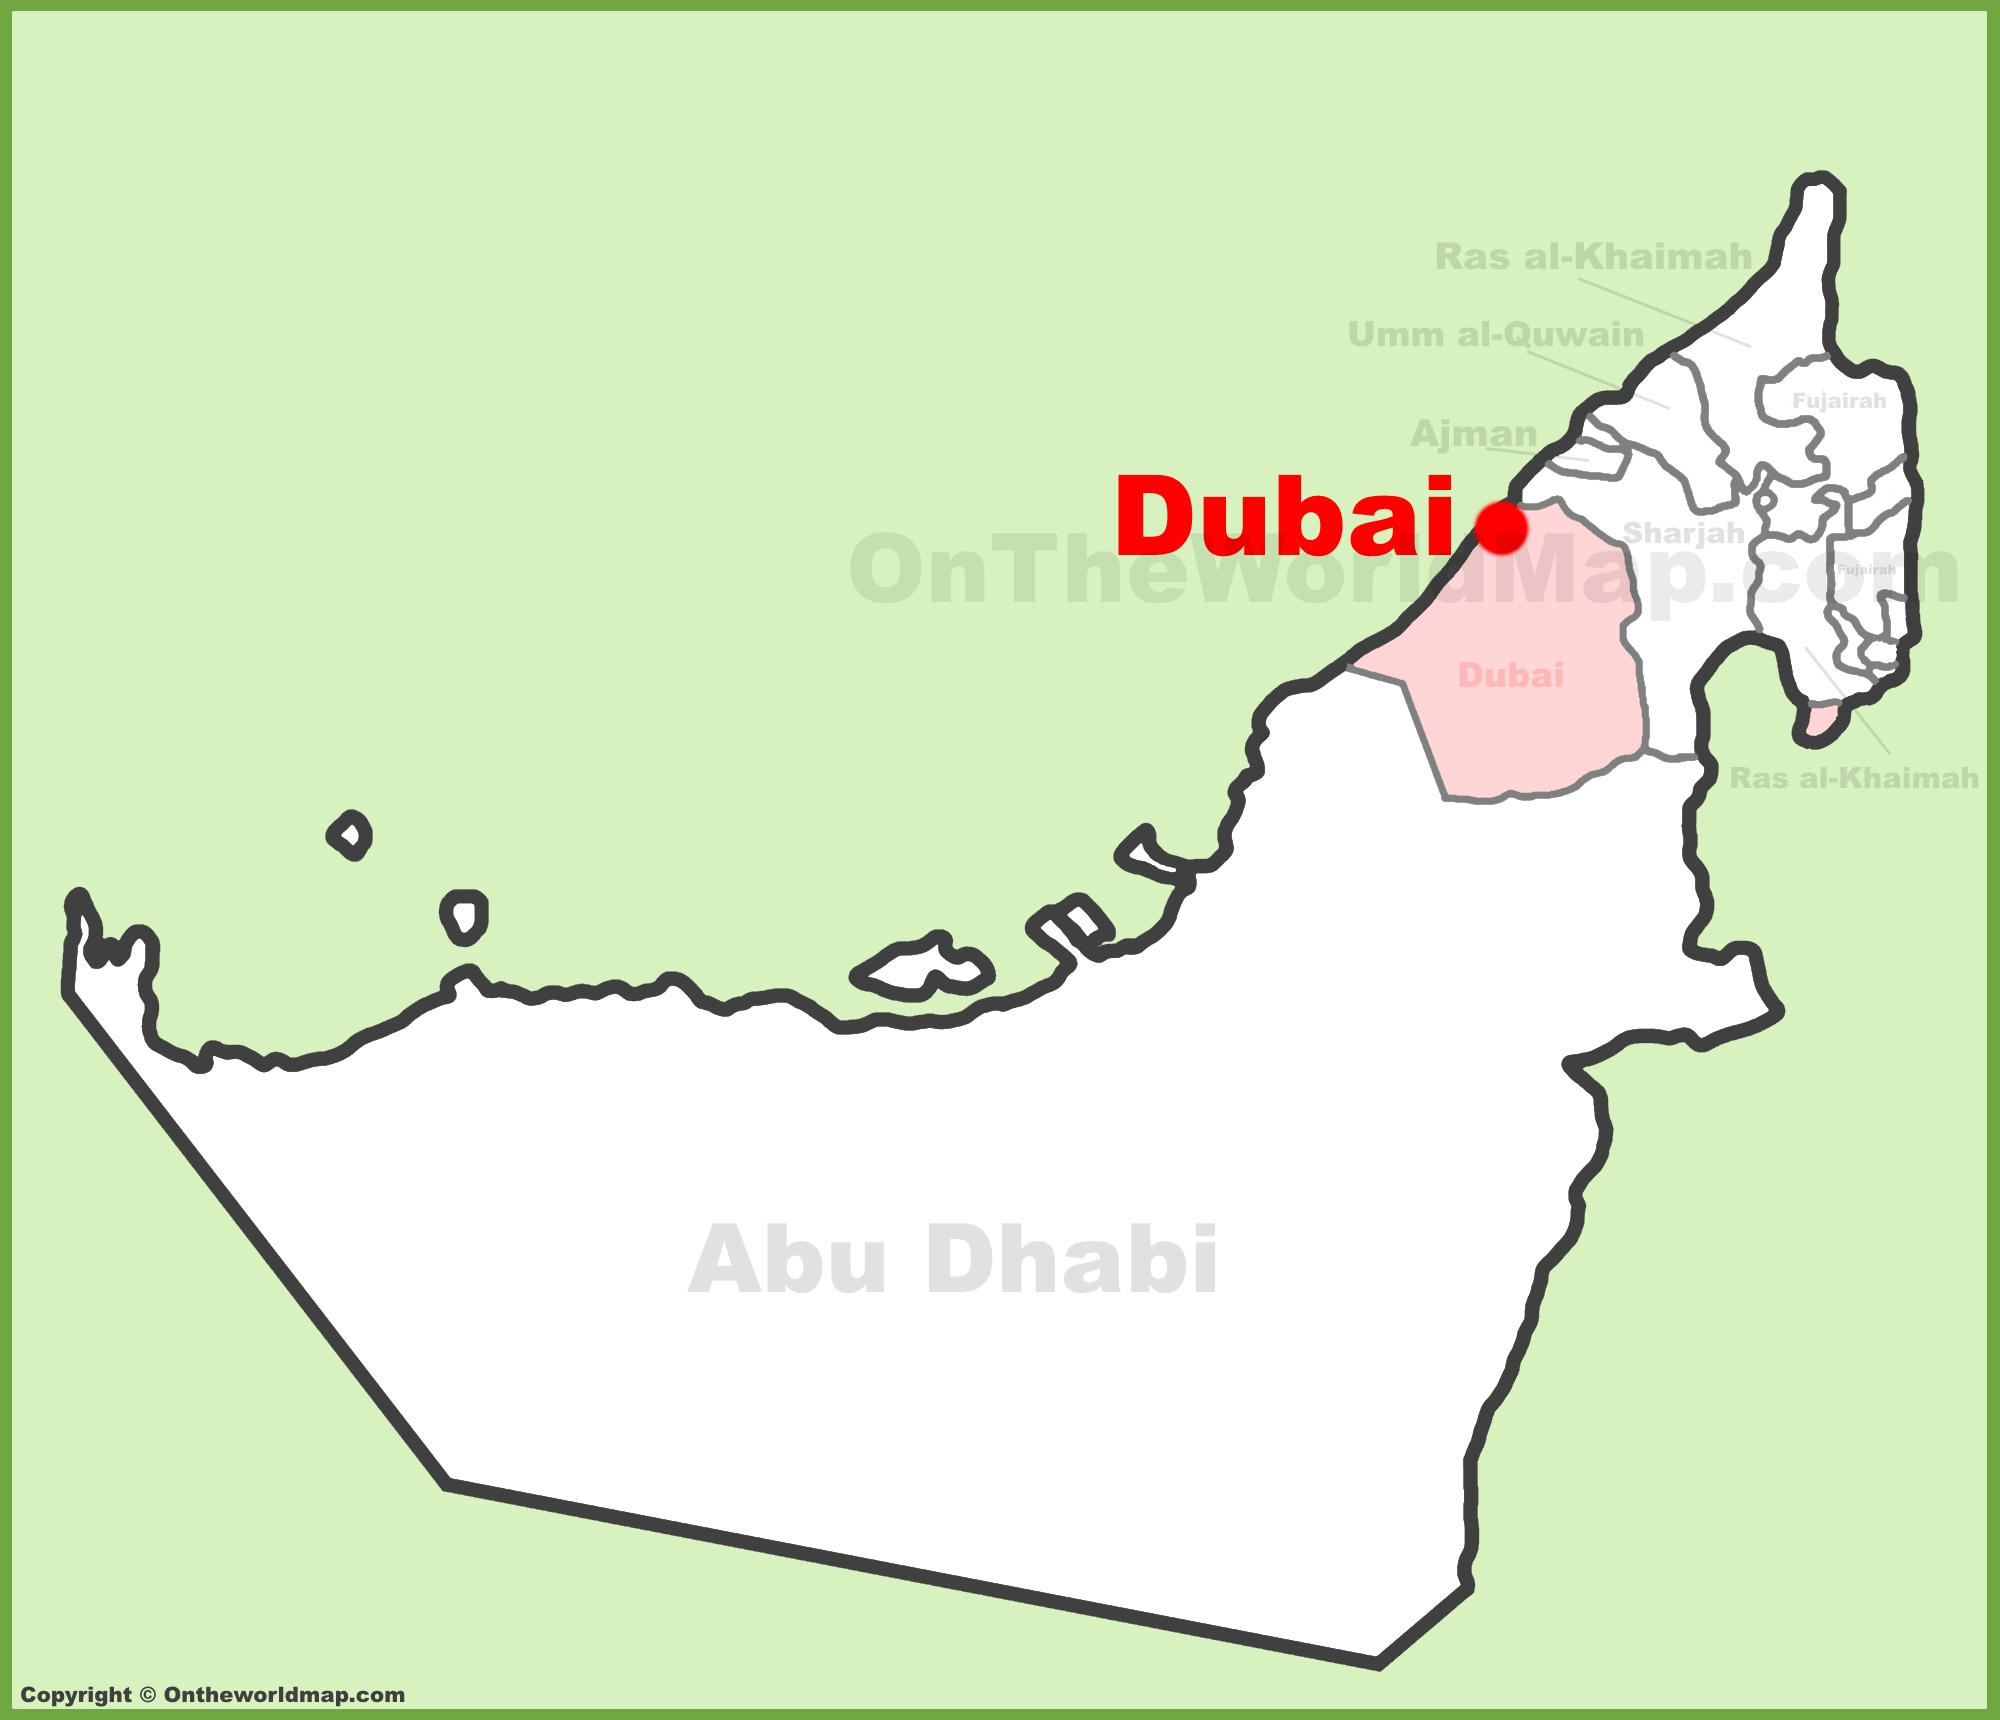 Dubai Map Location Dubai Maps | UAE | Maps of Dubai